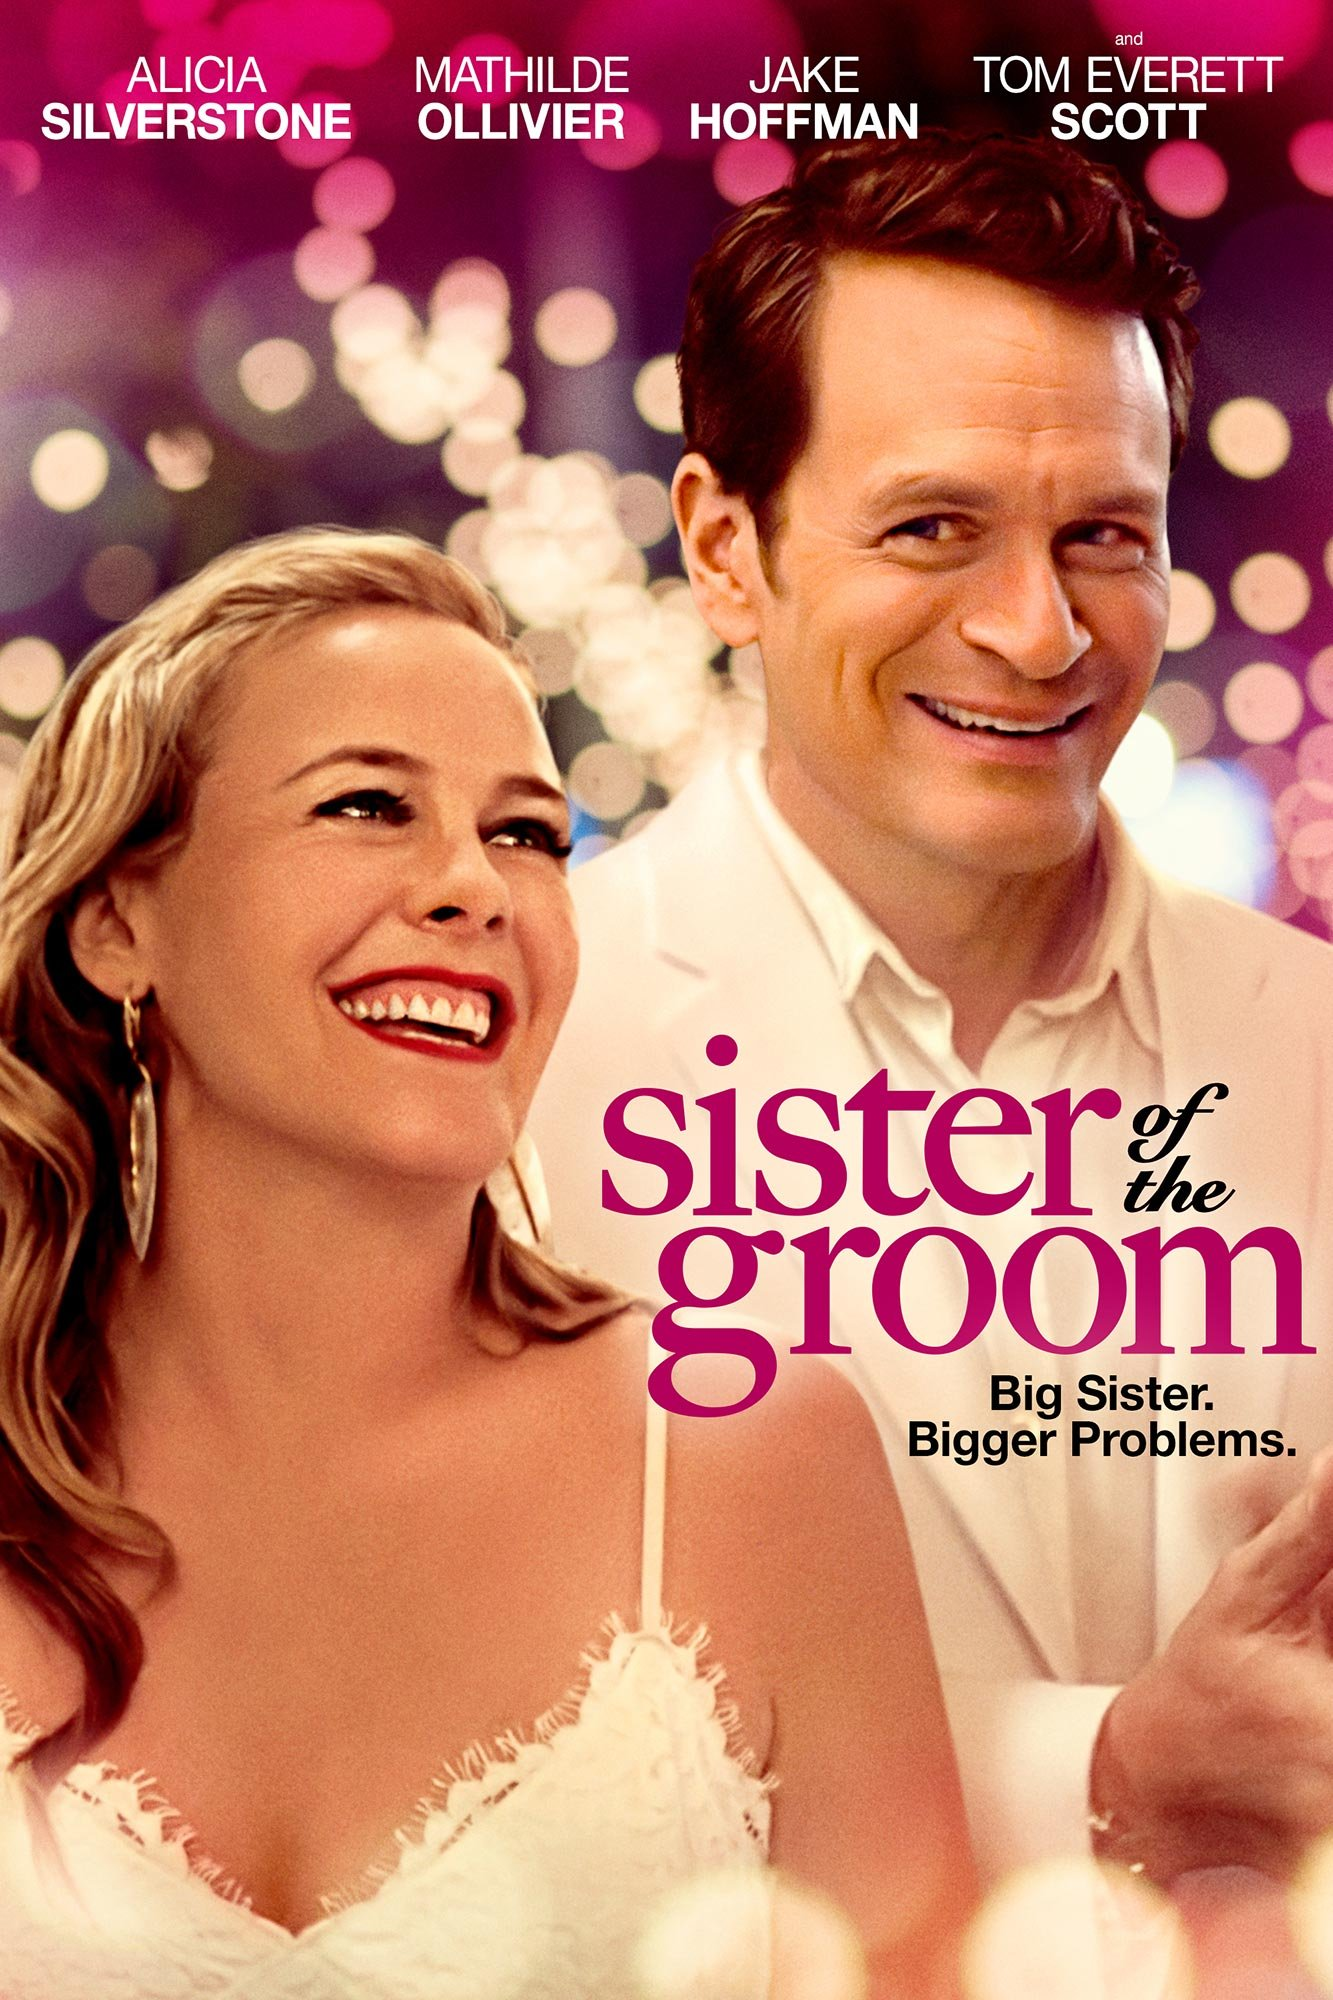 Sister of the Groom poster image